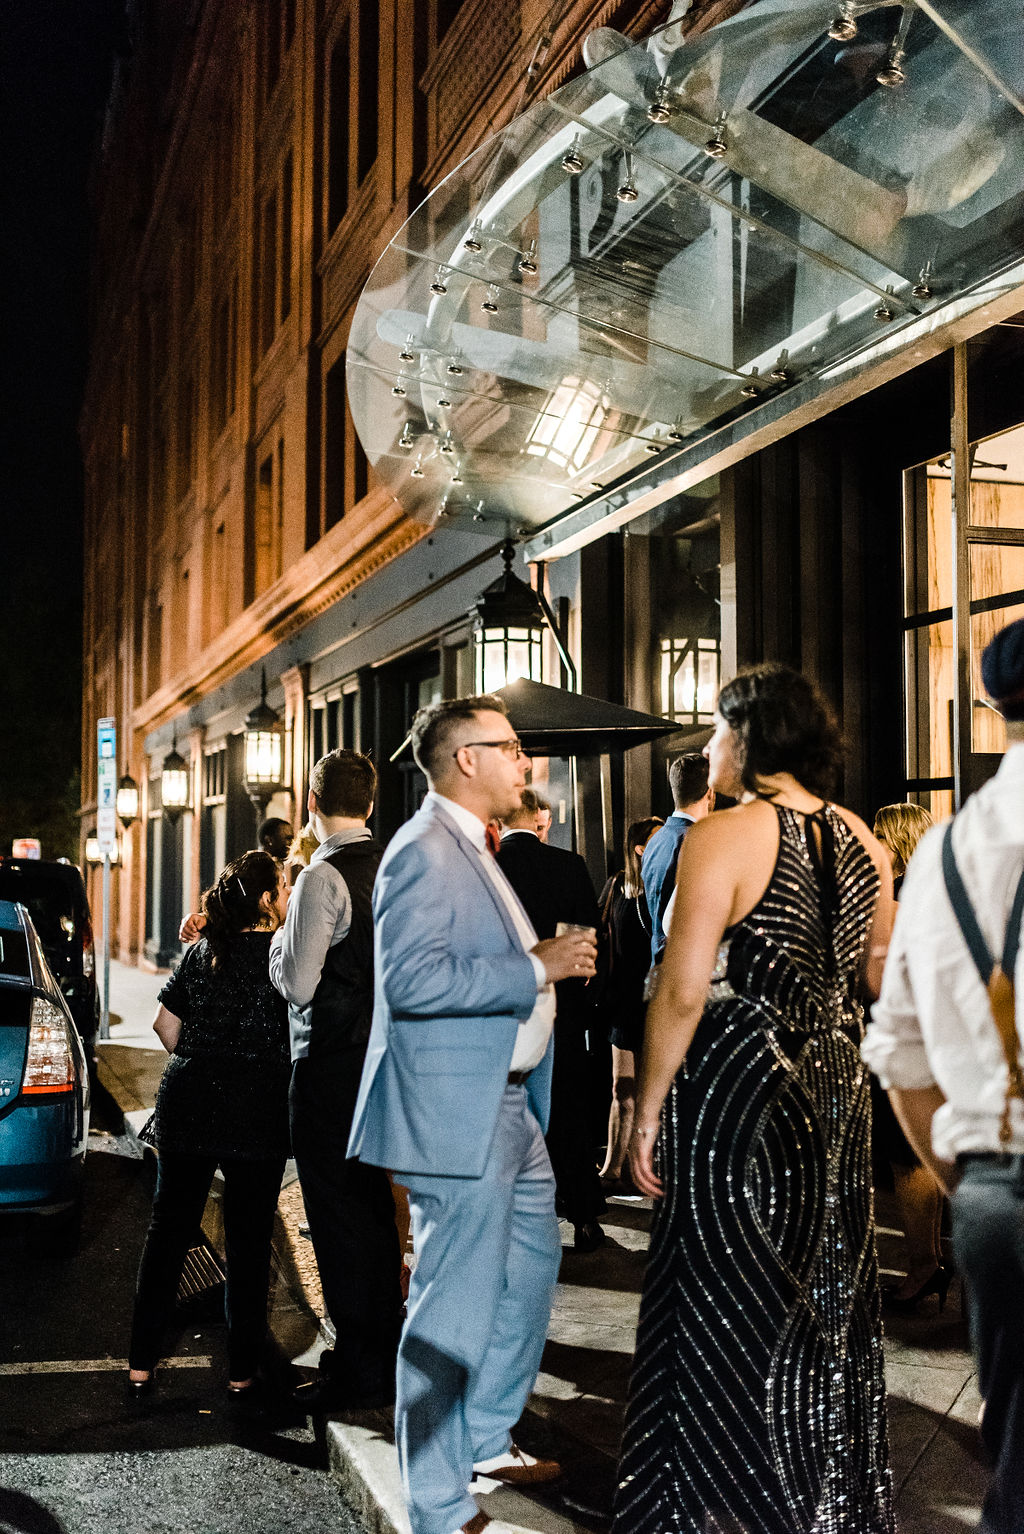 Late Night Food Truck at Melanie & Tyler Anderson's Wedding at The Goodwin Hotel - Pearl Weddings & Events